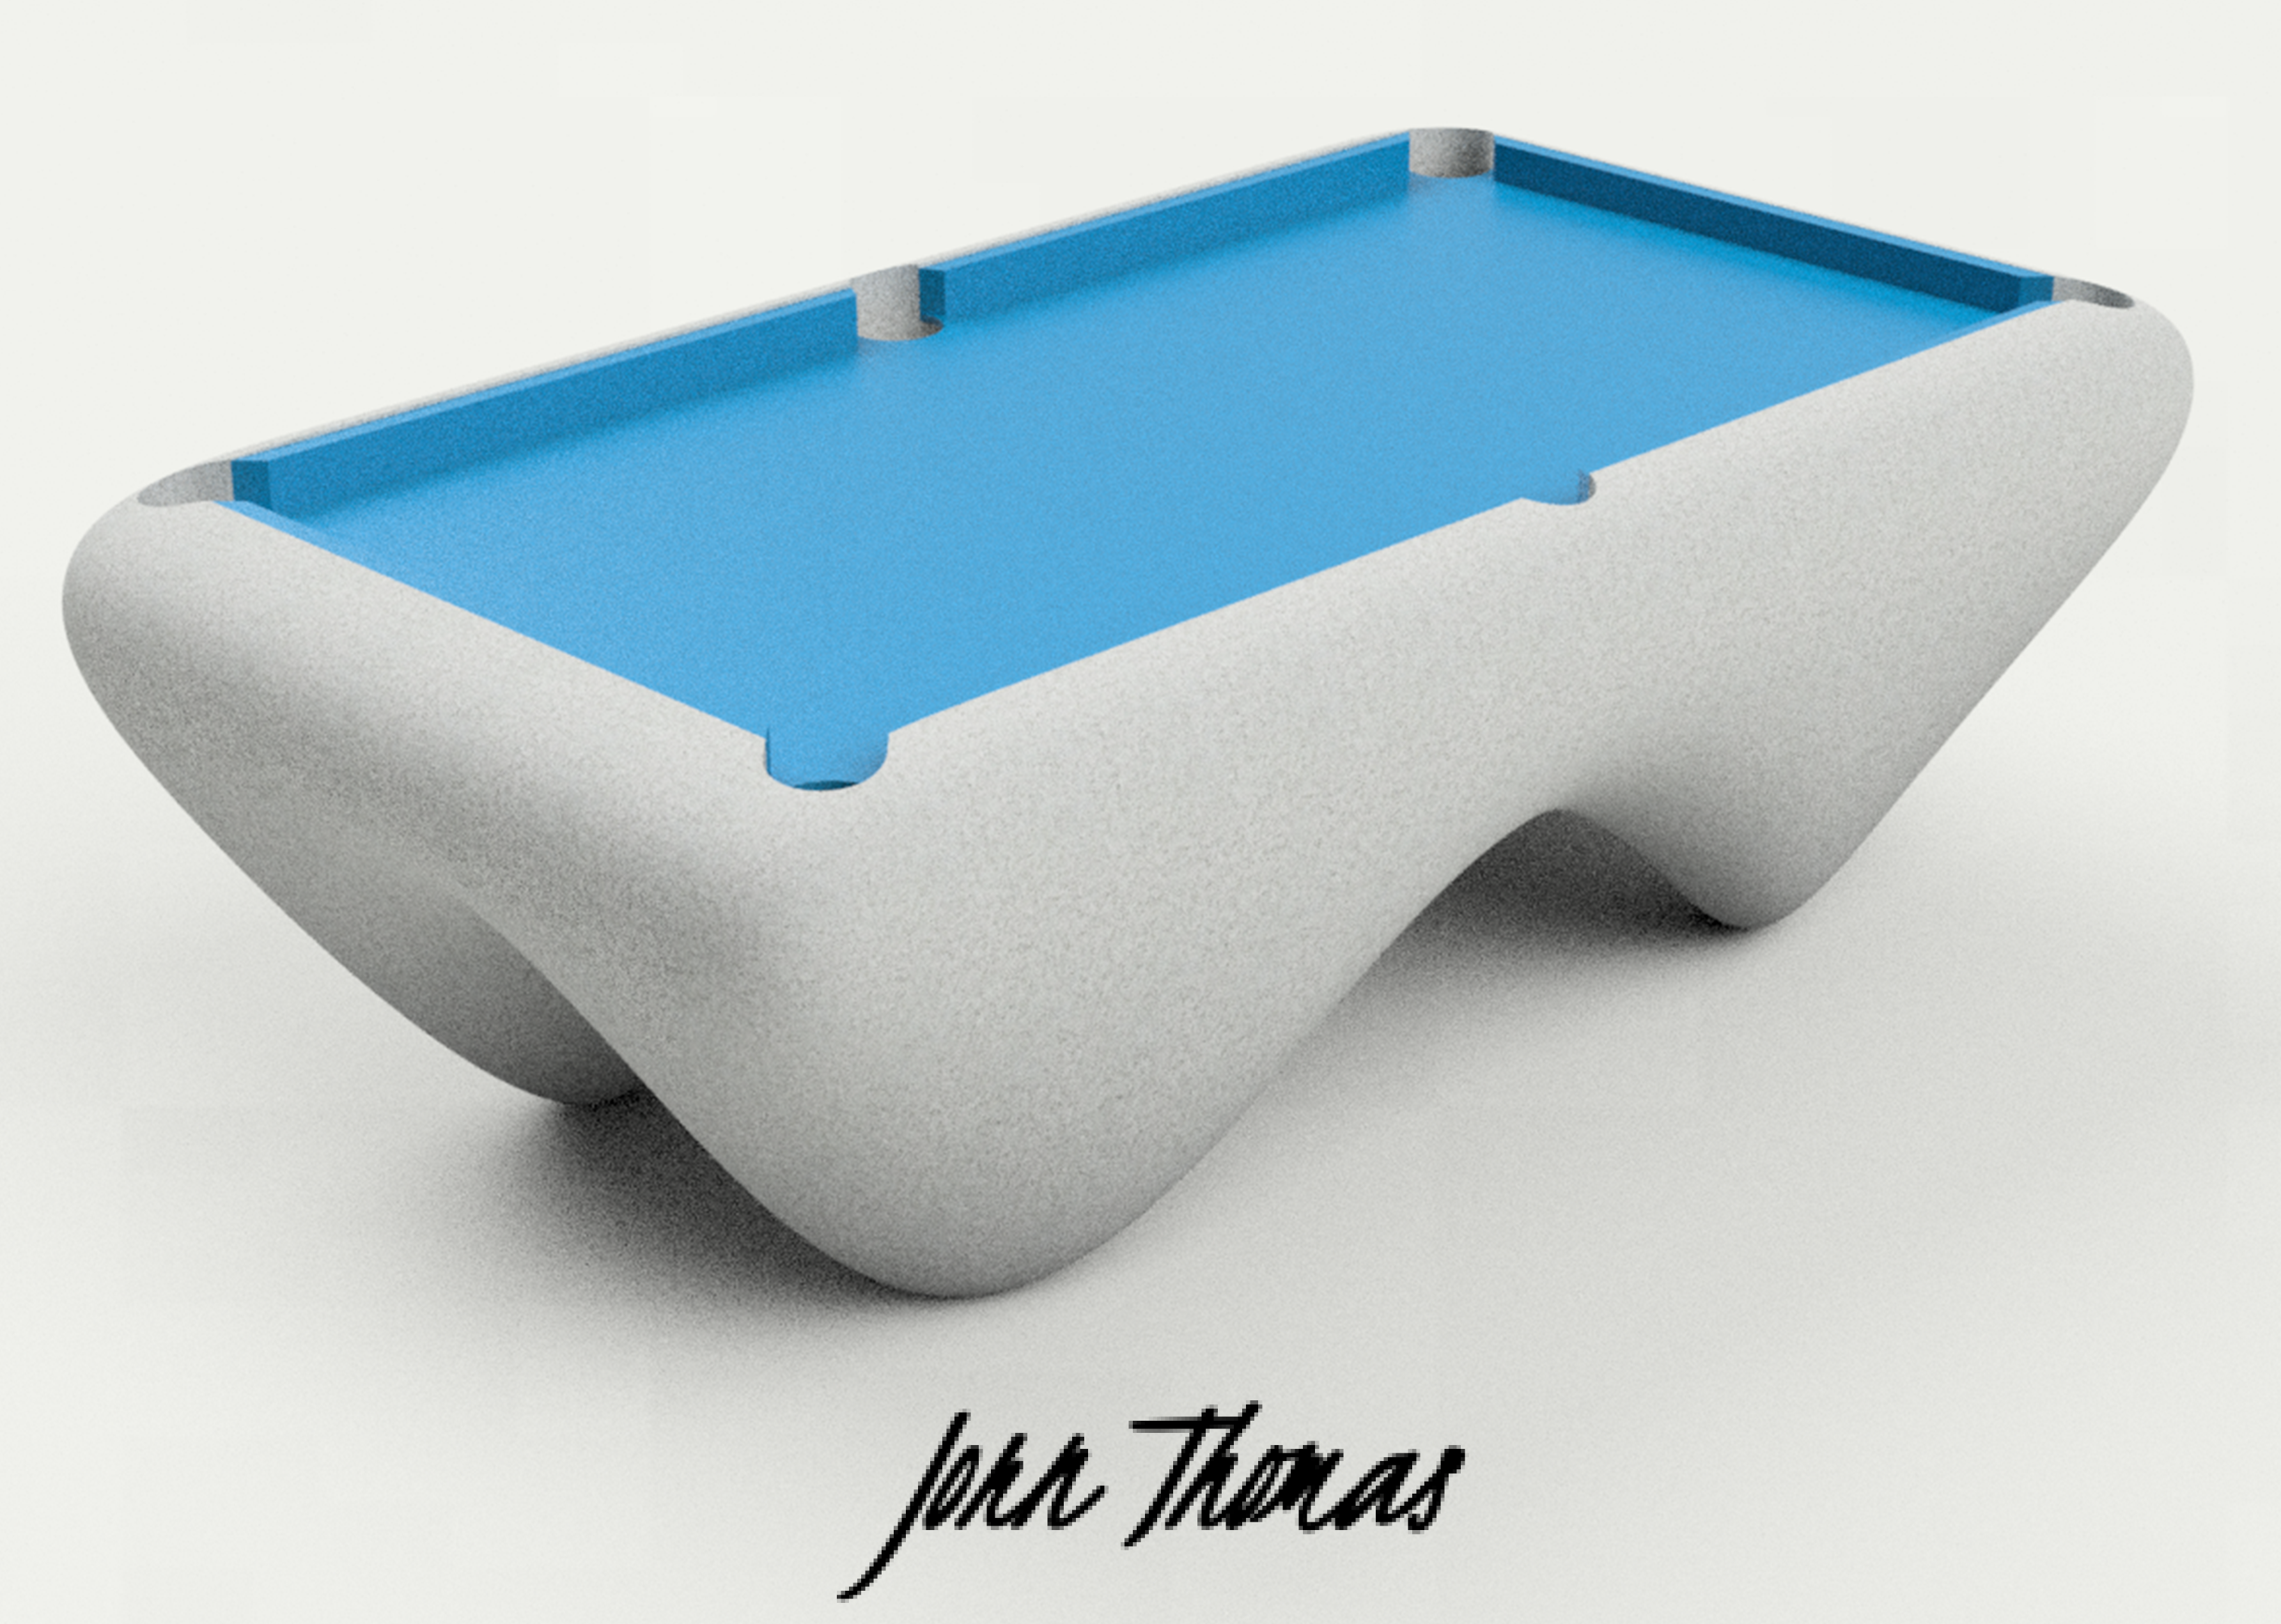 jorn thomas pooltable.png